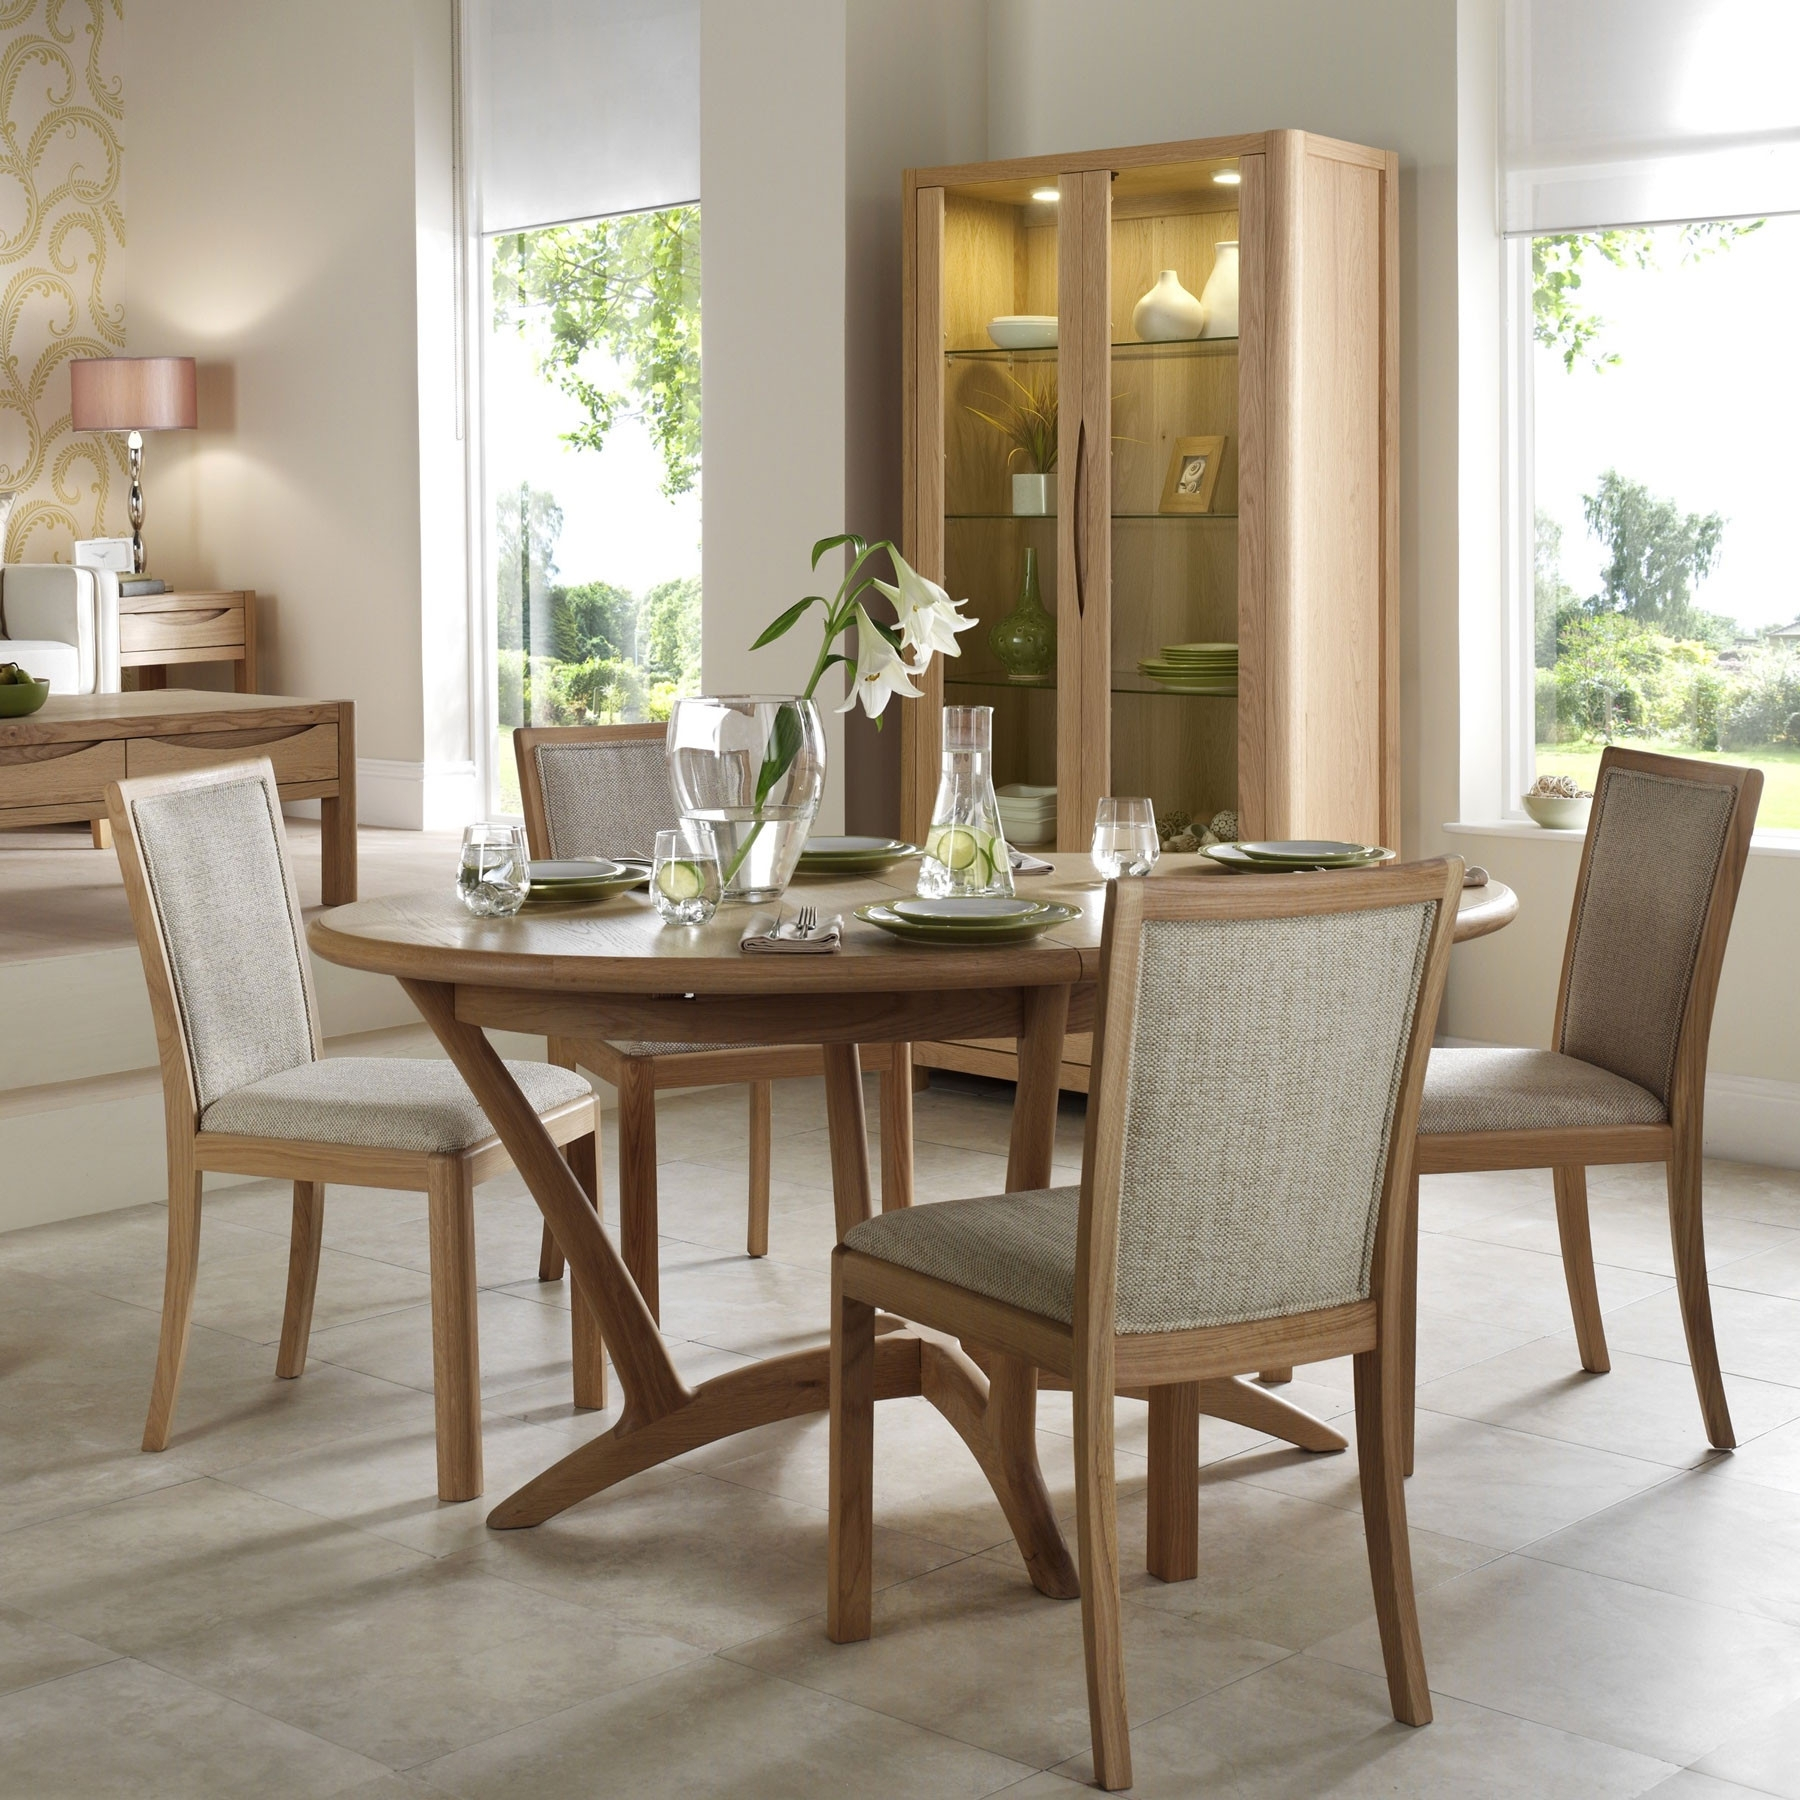 Preferred Light Oak Dining Tables And 6 Chairs Regarding Oslo Light Oak Oval Extending 210Cm Dining Table & 6 Fabric Chairs (View 18 of 25)